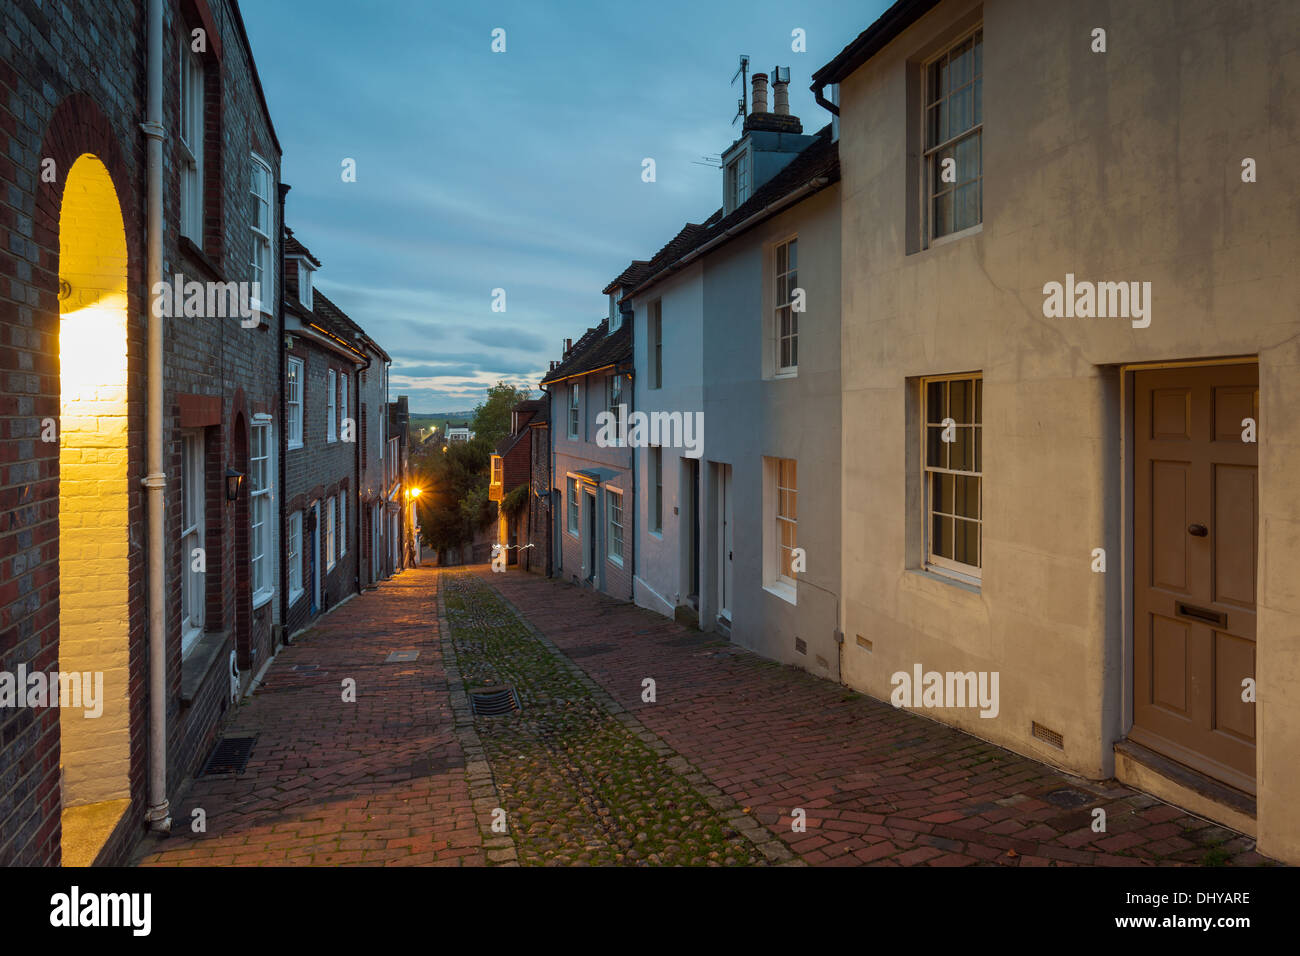 Dusk at Keere Street in Lewes, East Sussex, England. Stock Photo